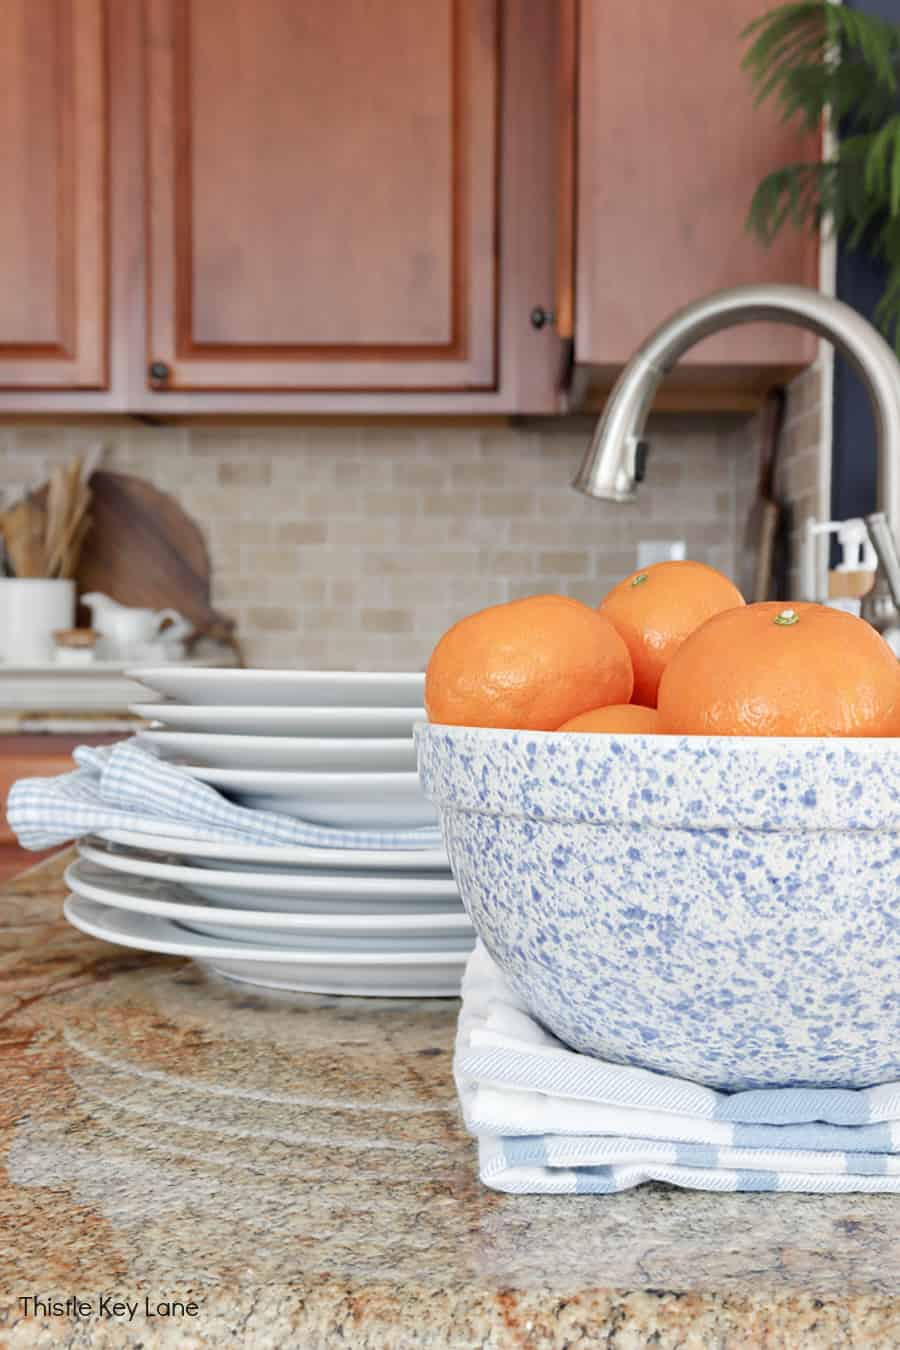 Bowl of oranges and white dishes sitting on a counter - Using Trays To Control Kitchen Clutter.